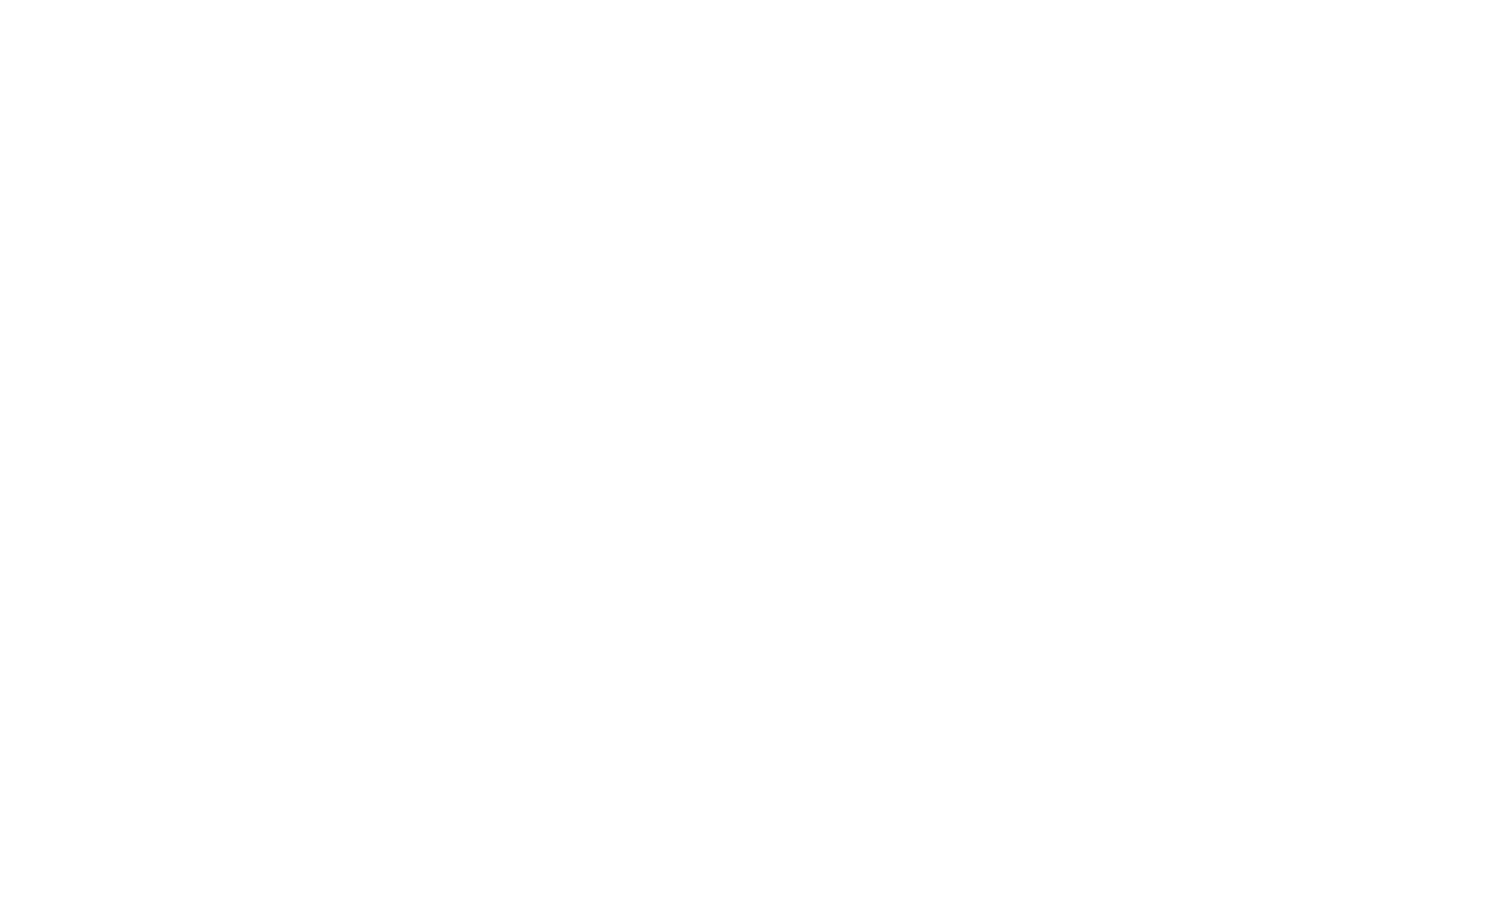 Auto Buying Consultants of Maine